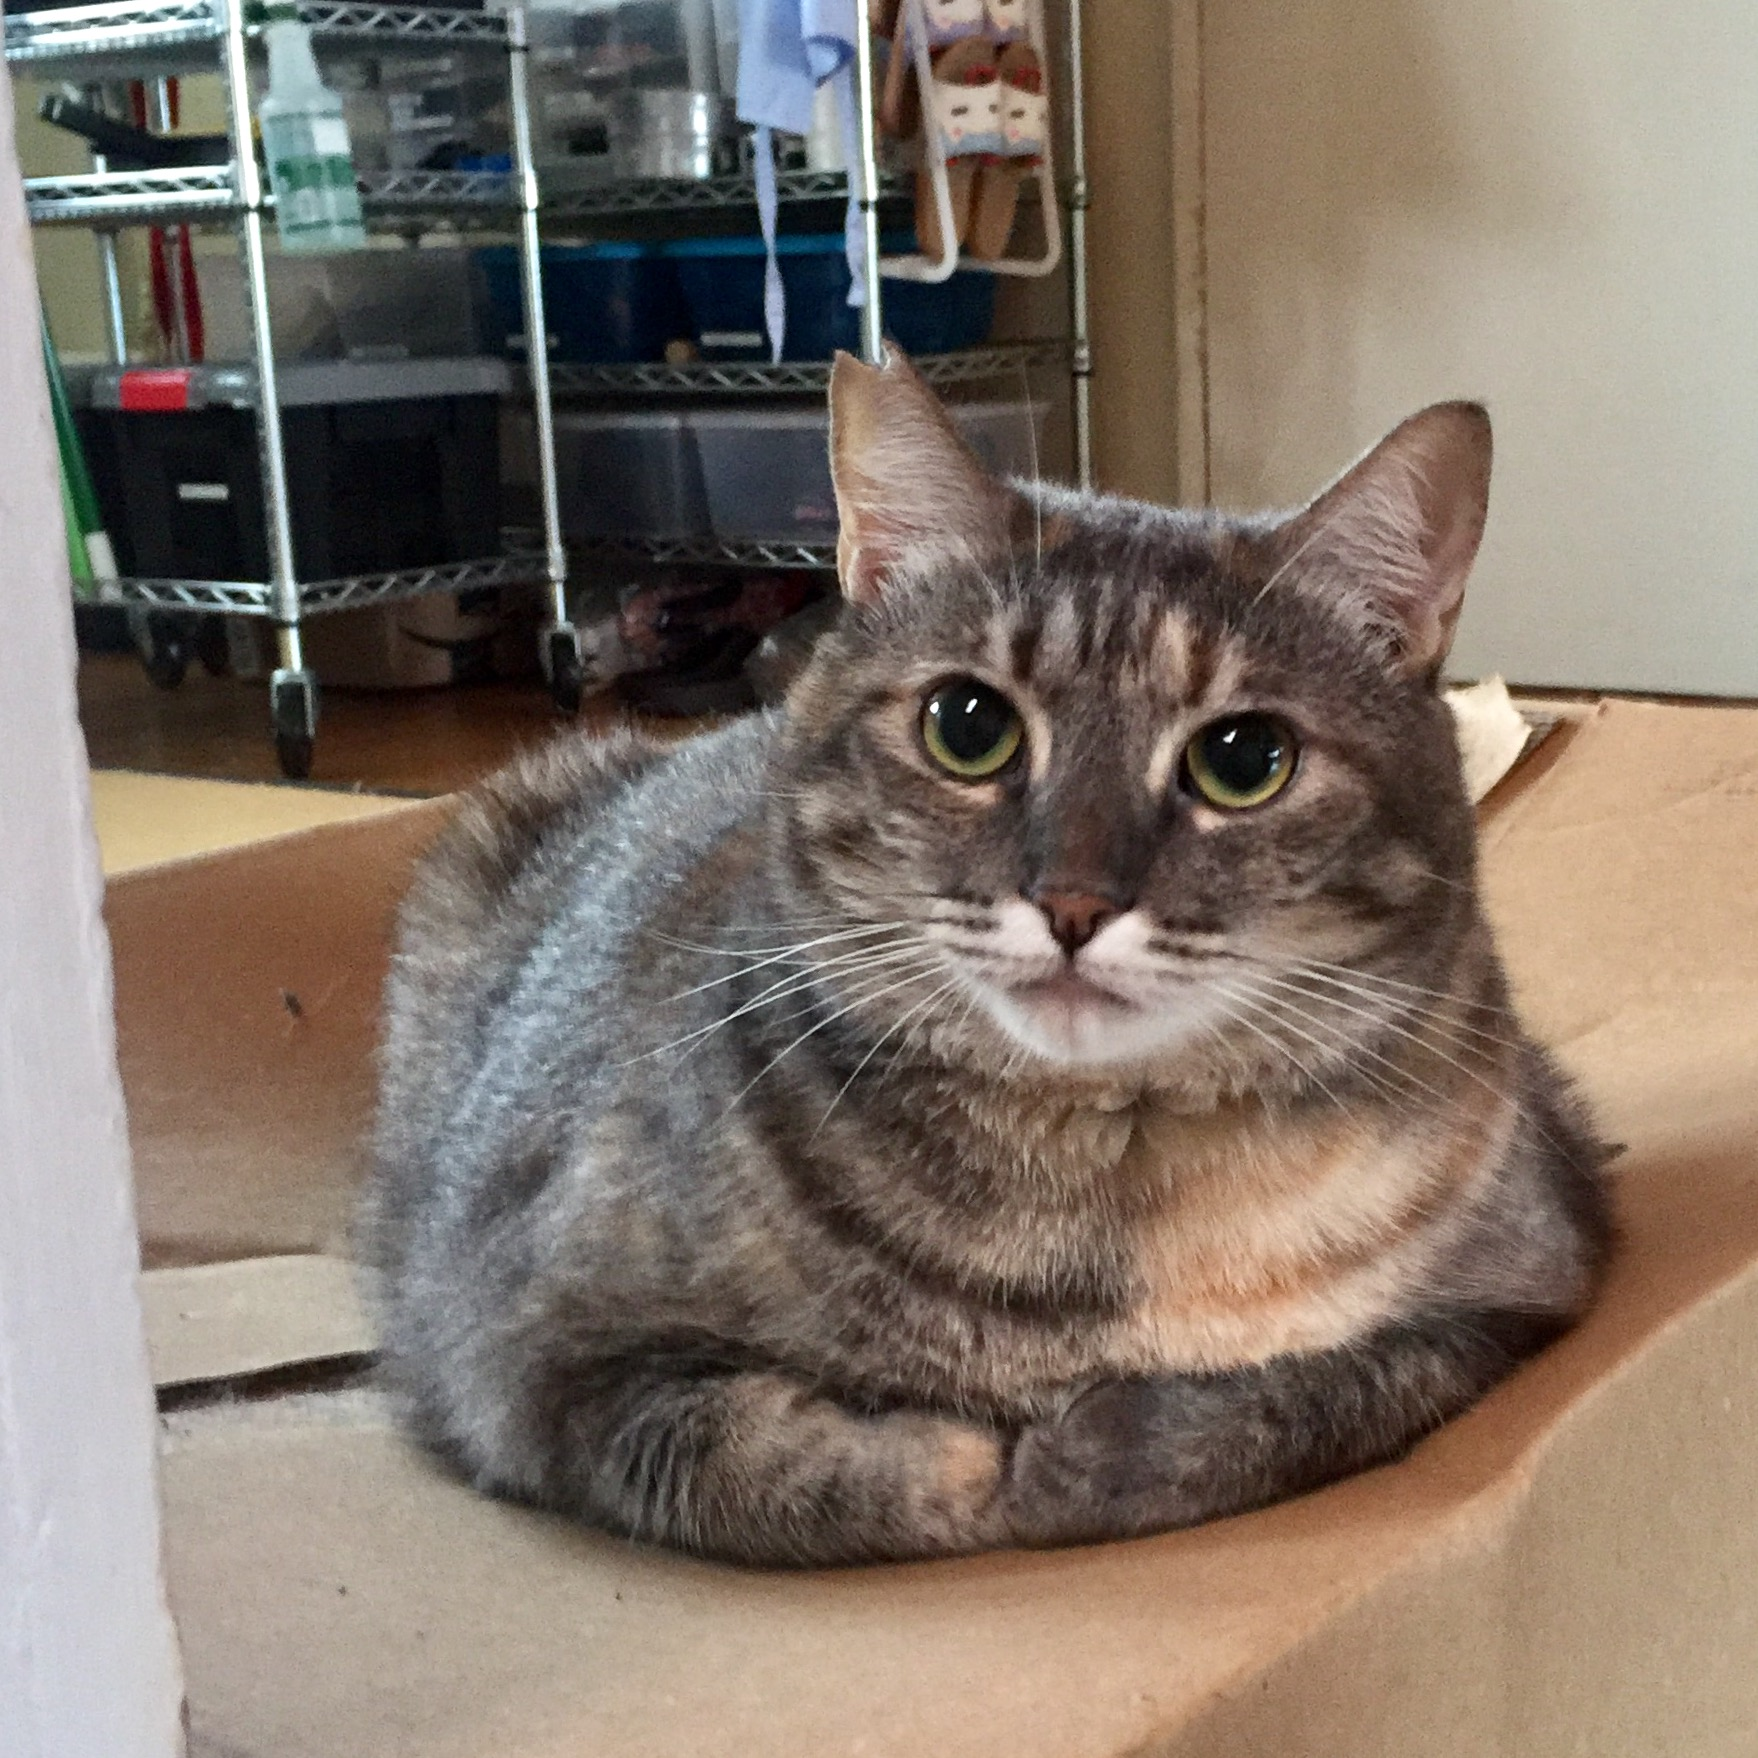 Nora sitting on her favorite large box.